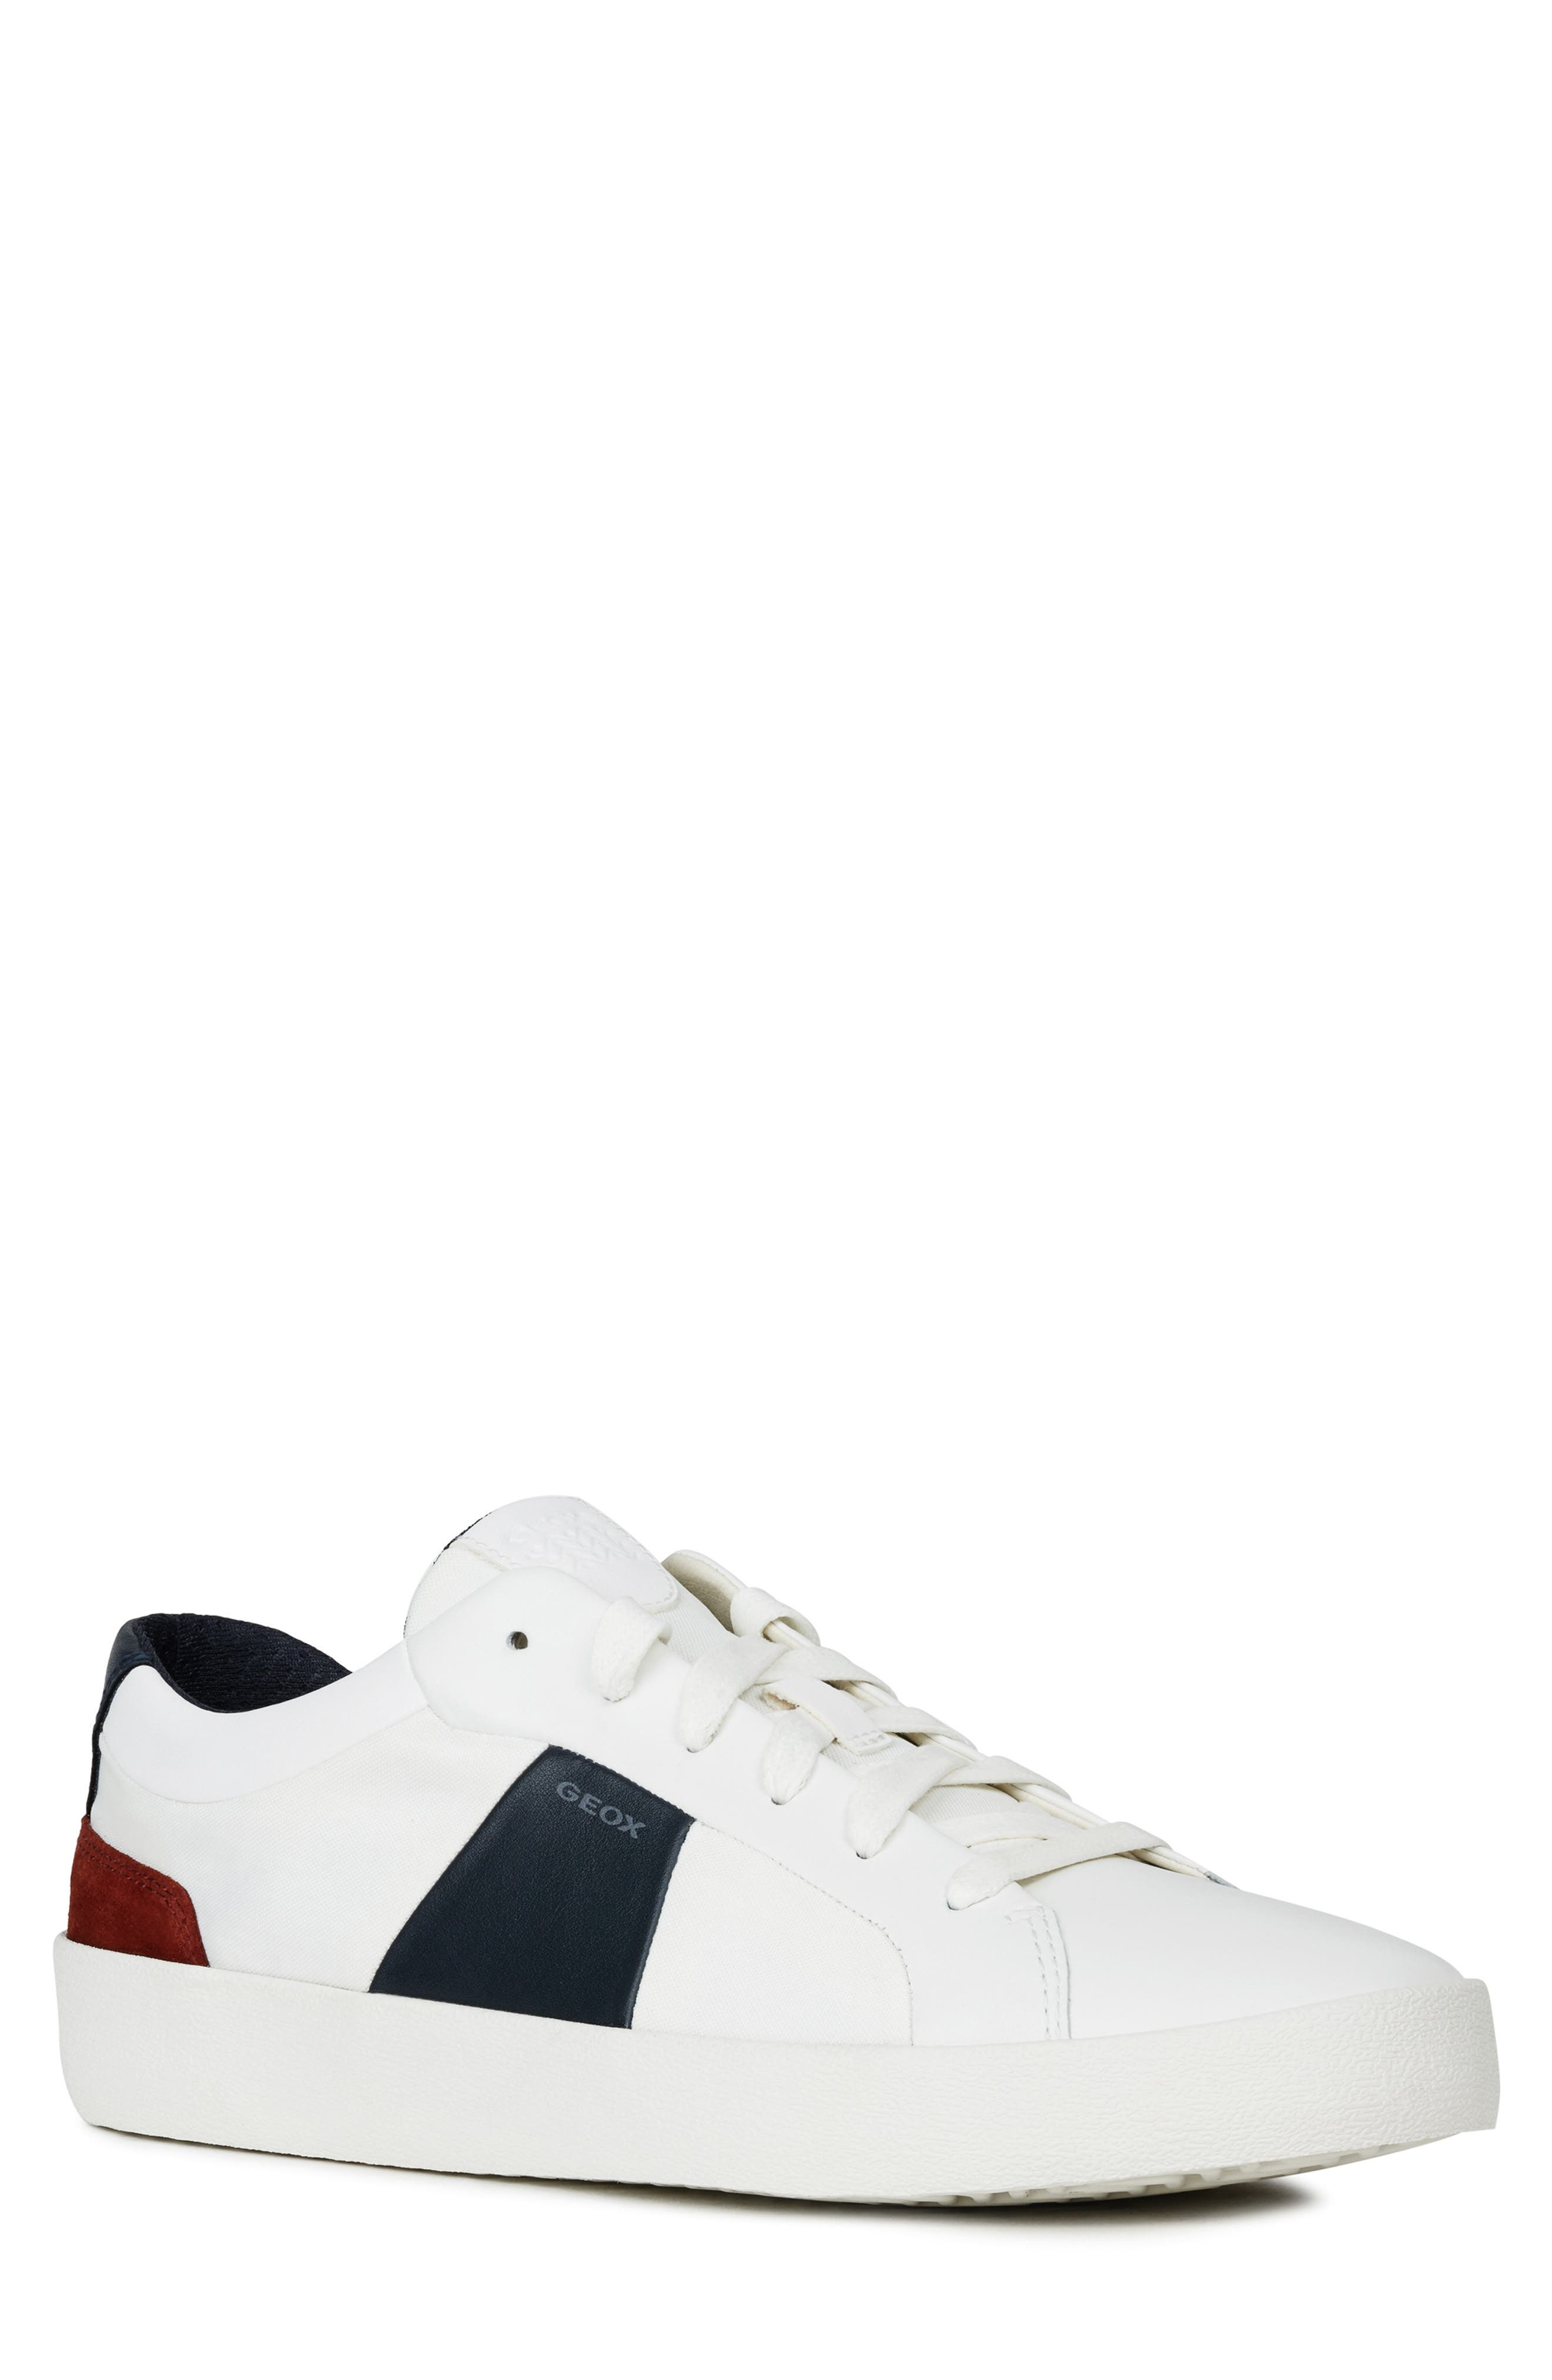 Image of GEOX Warley 2 Leather Sneaker